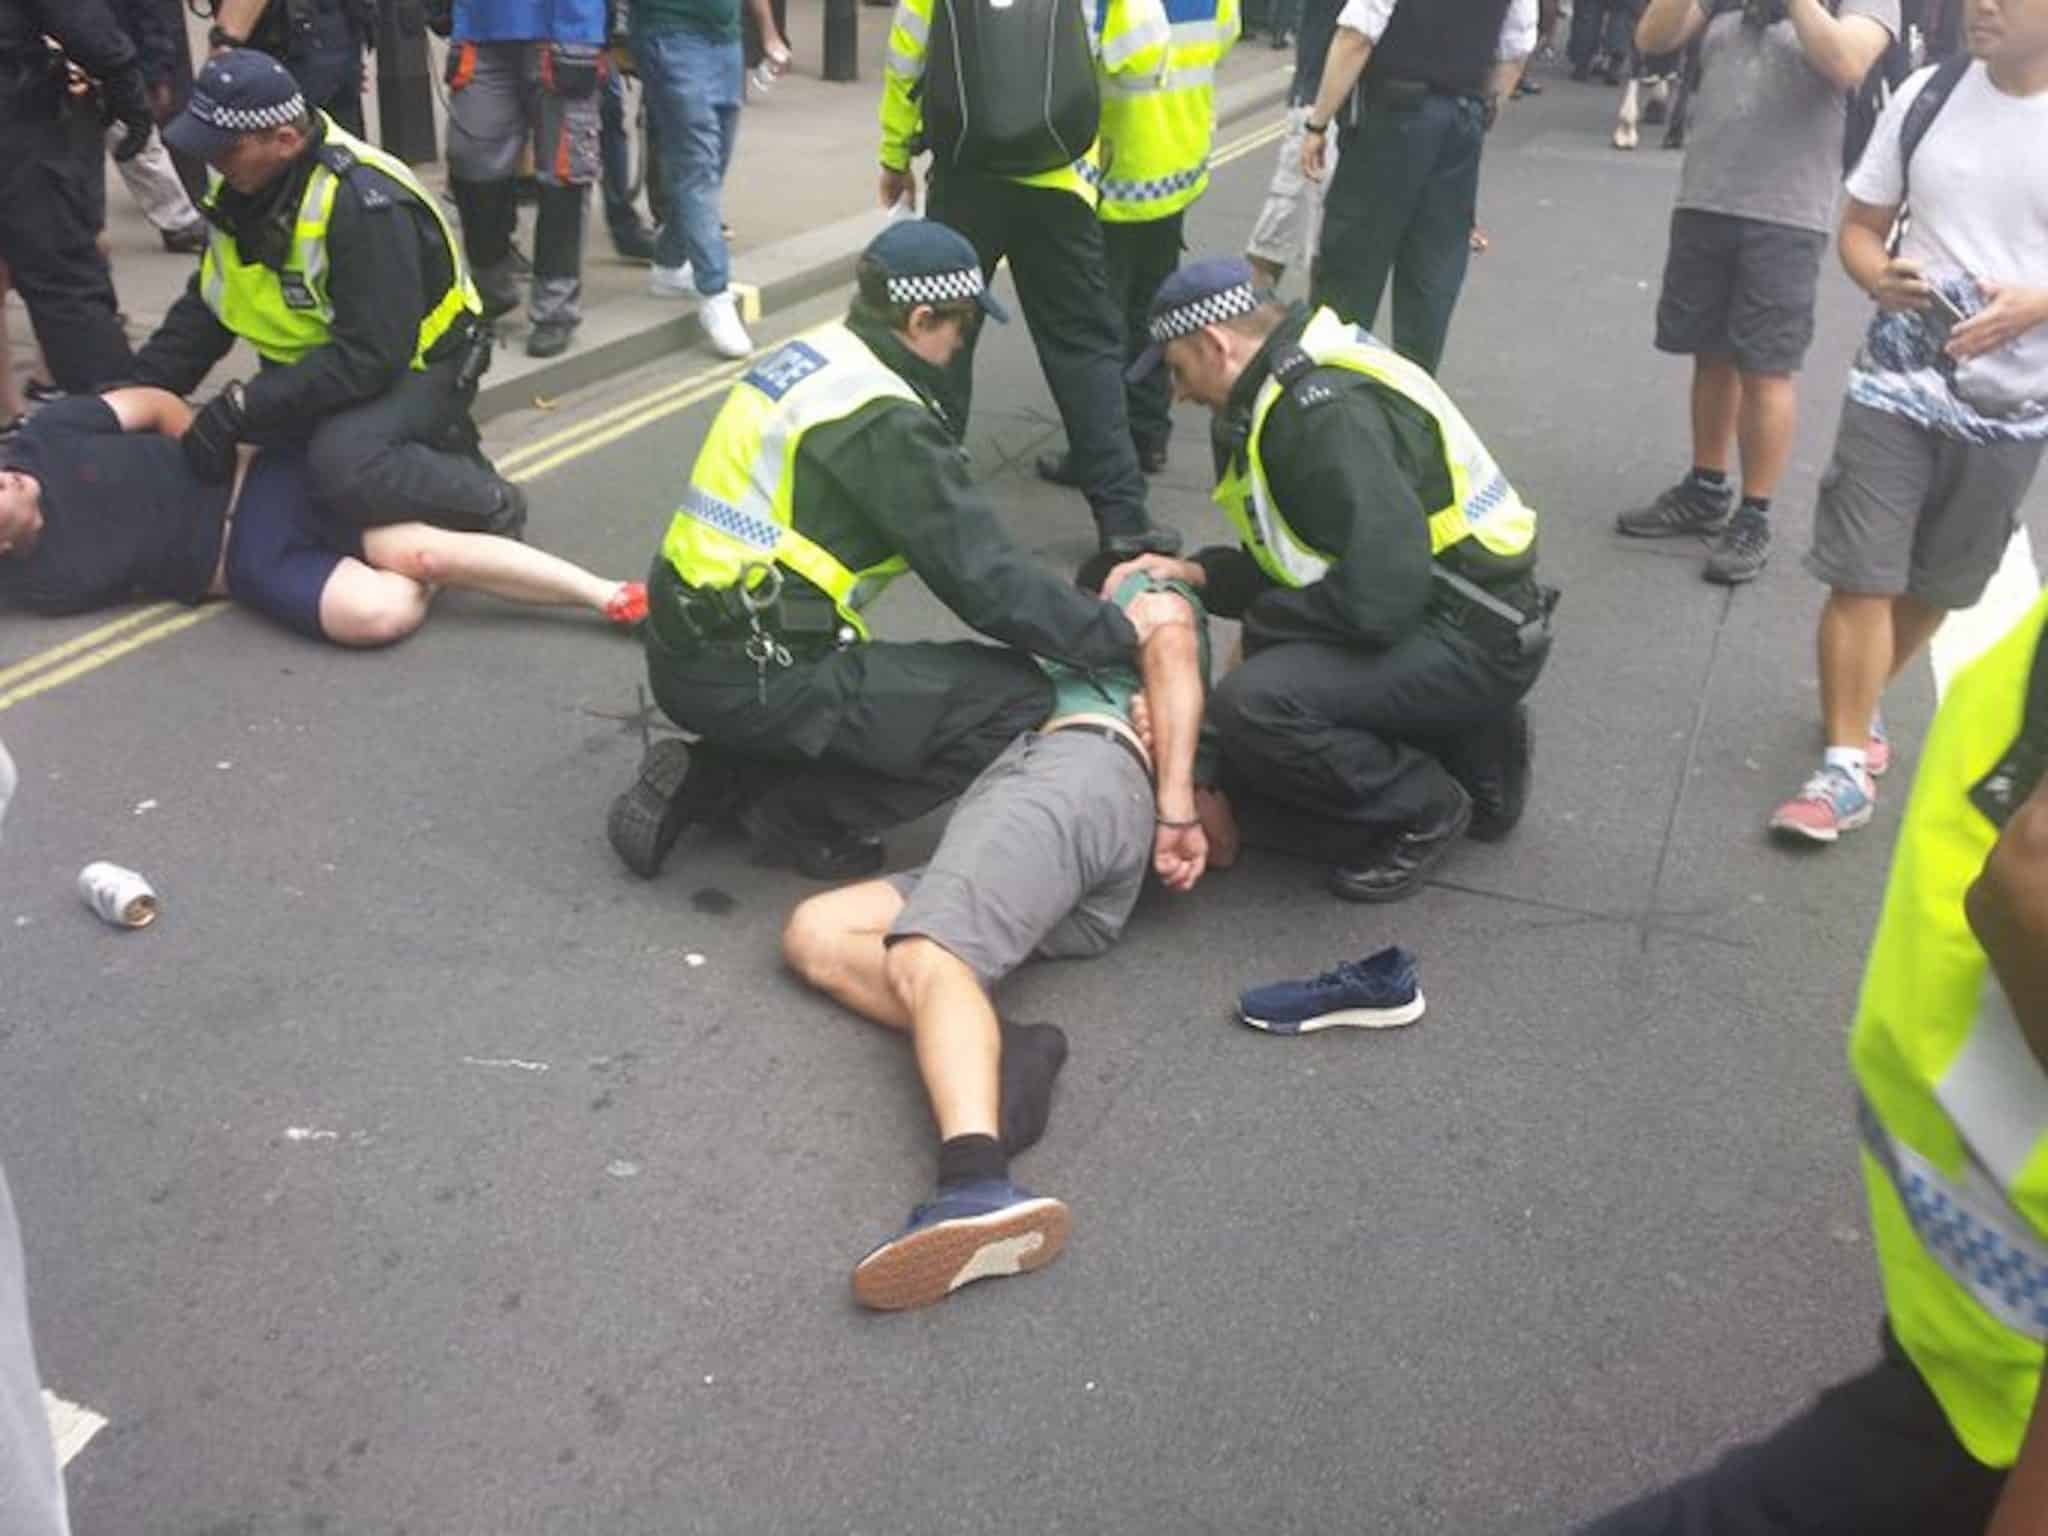 Police arrest Robinson supporters in Whitehall. (c) Chris Hobbs